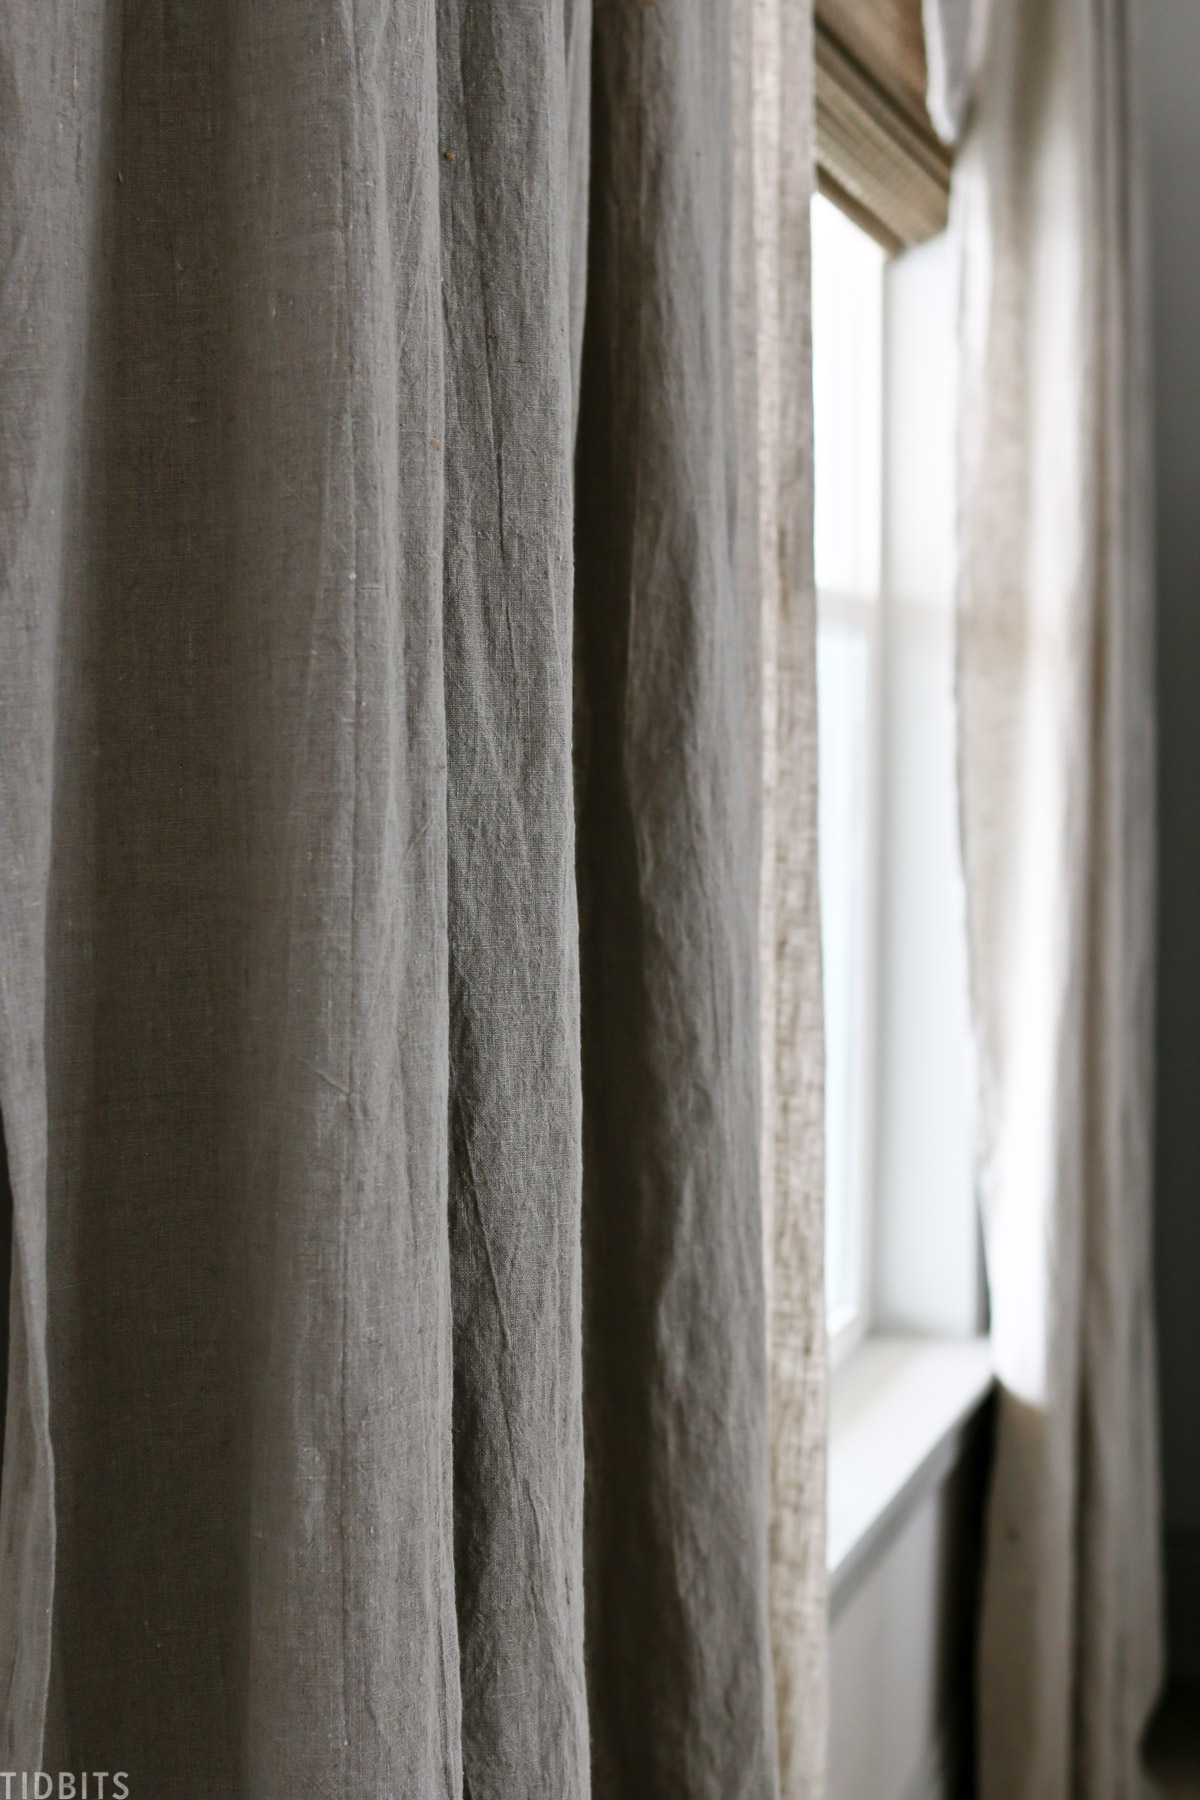 up close details on the DIY pleated curtains